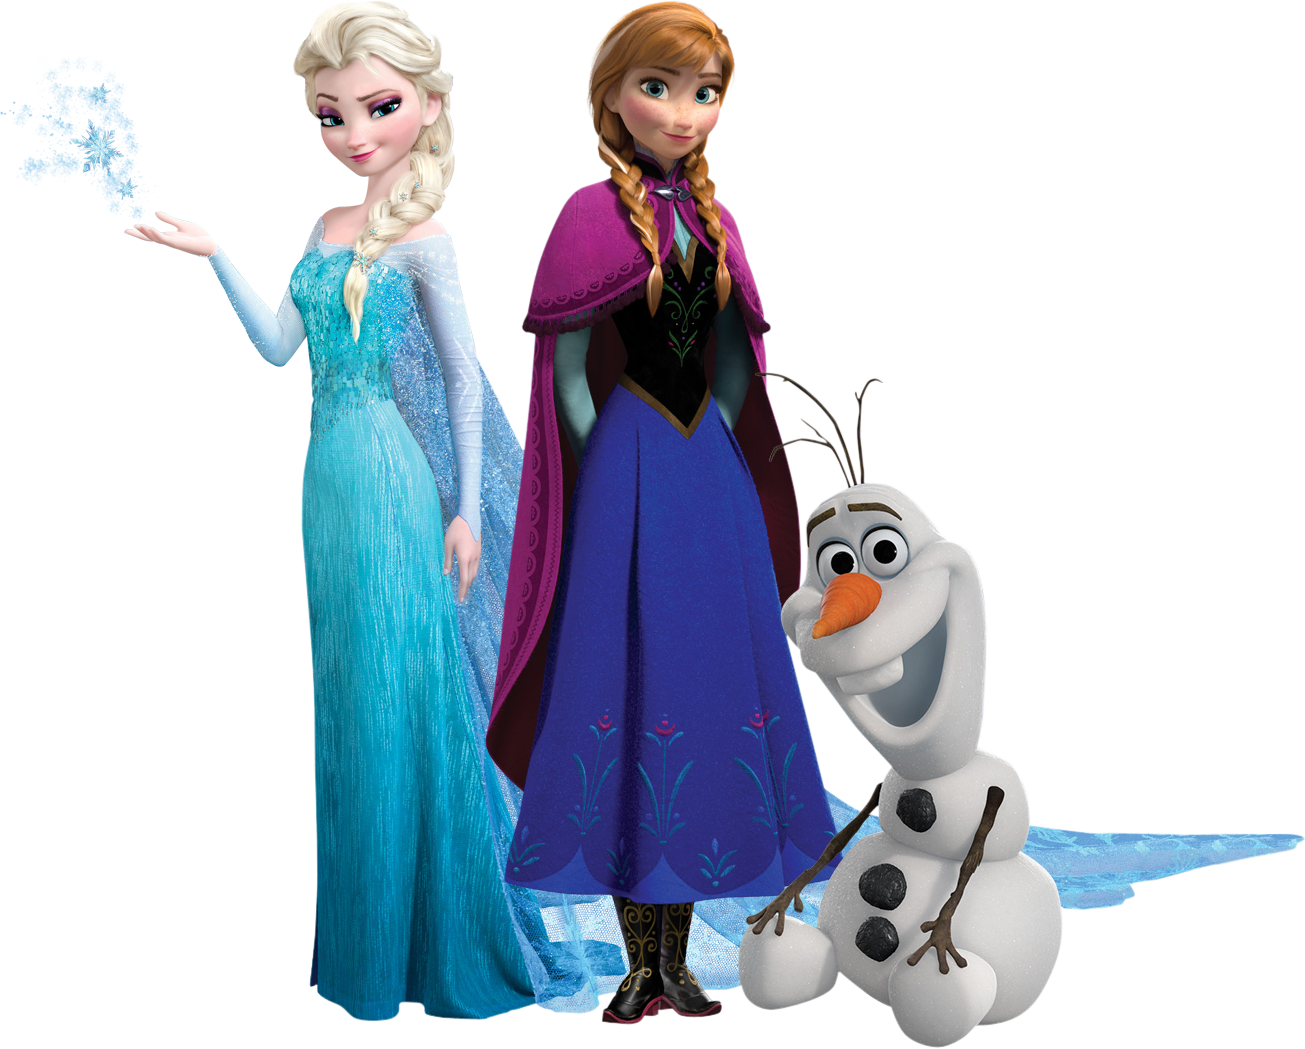 Frozen Transparent Background Clipart Images Black and White.